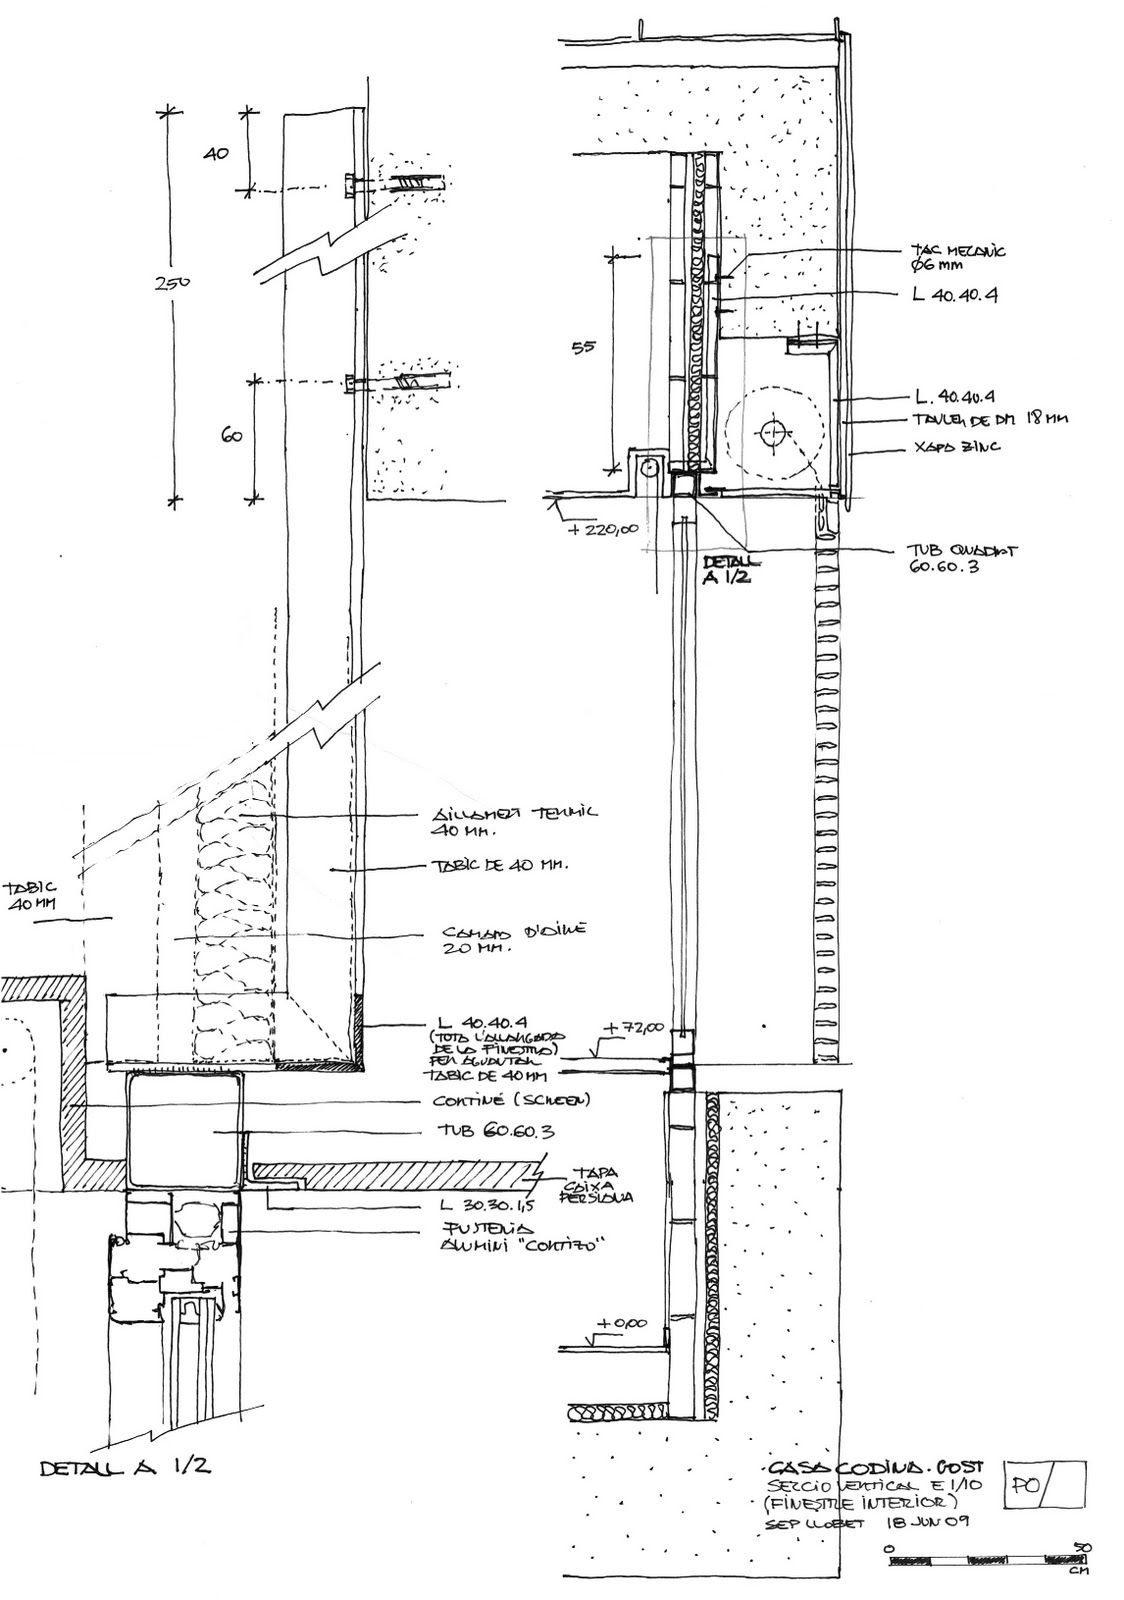 Pin By Exposed A U D On Architectural Details Drawings